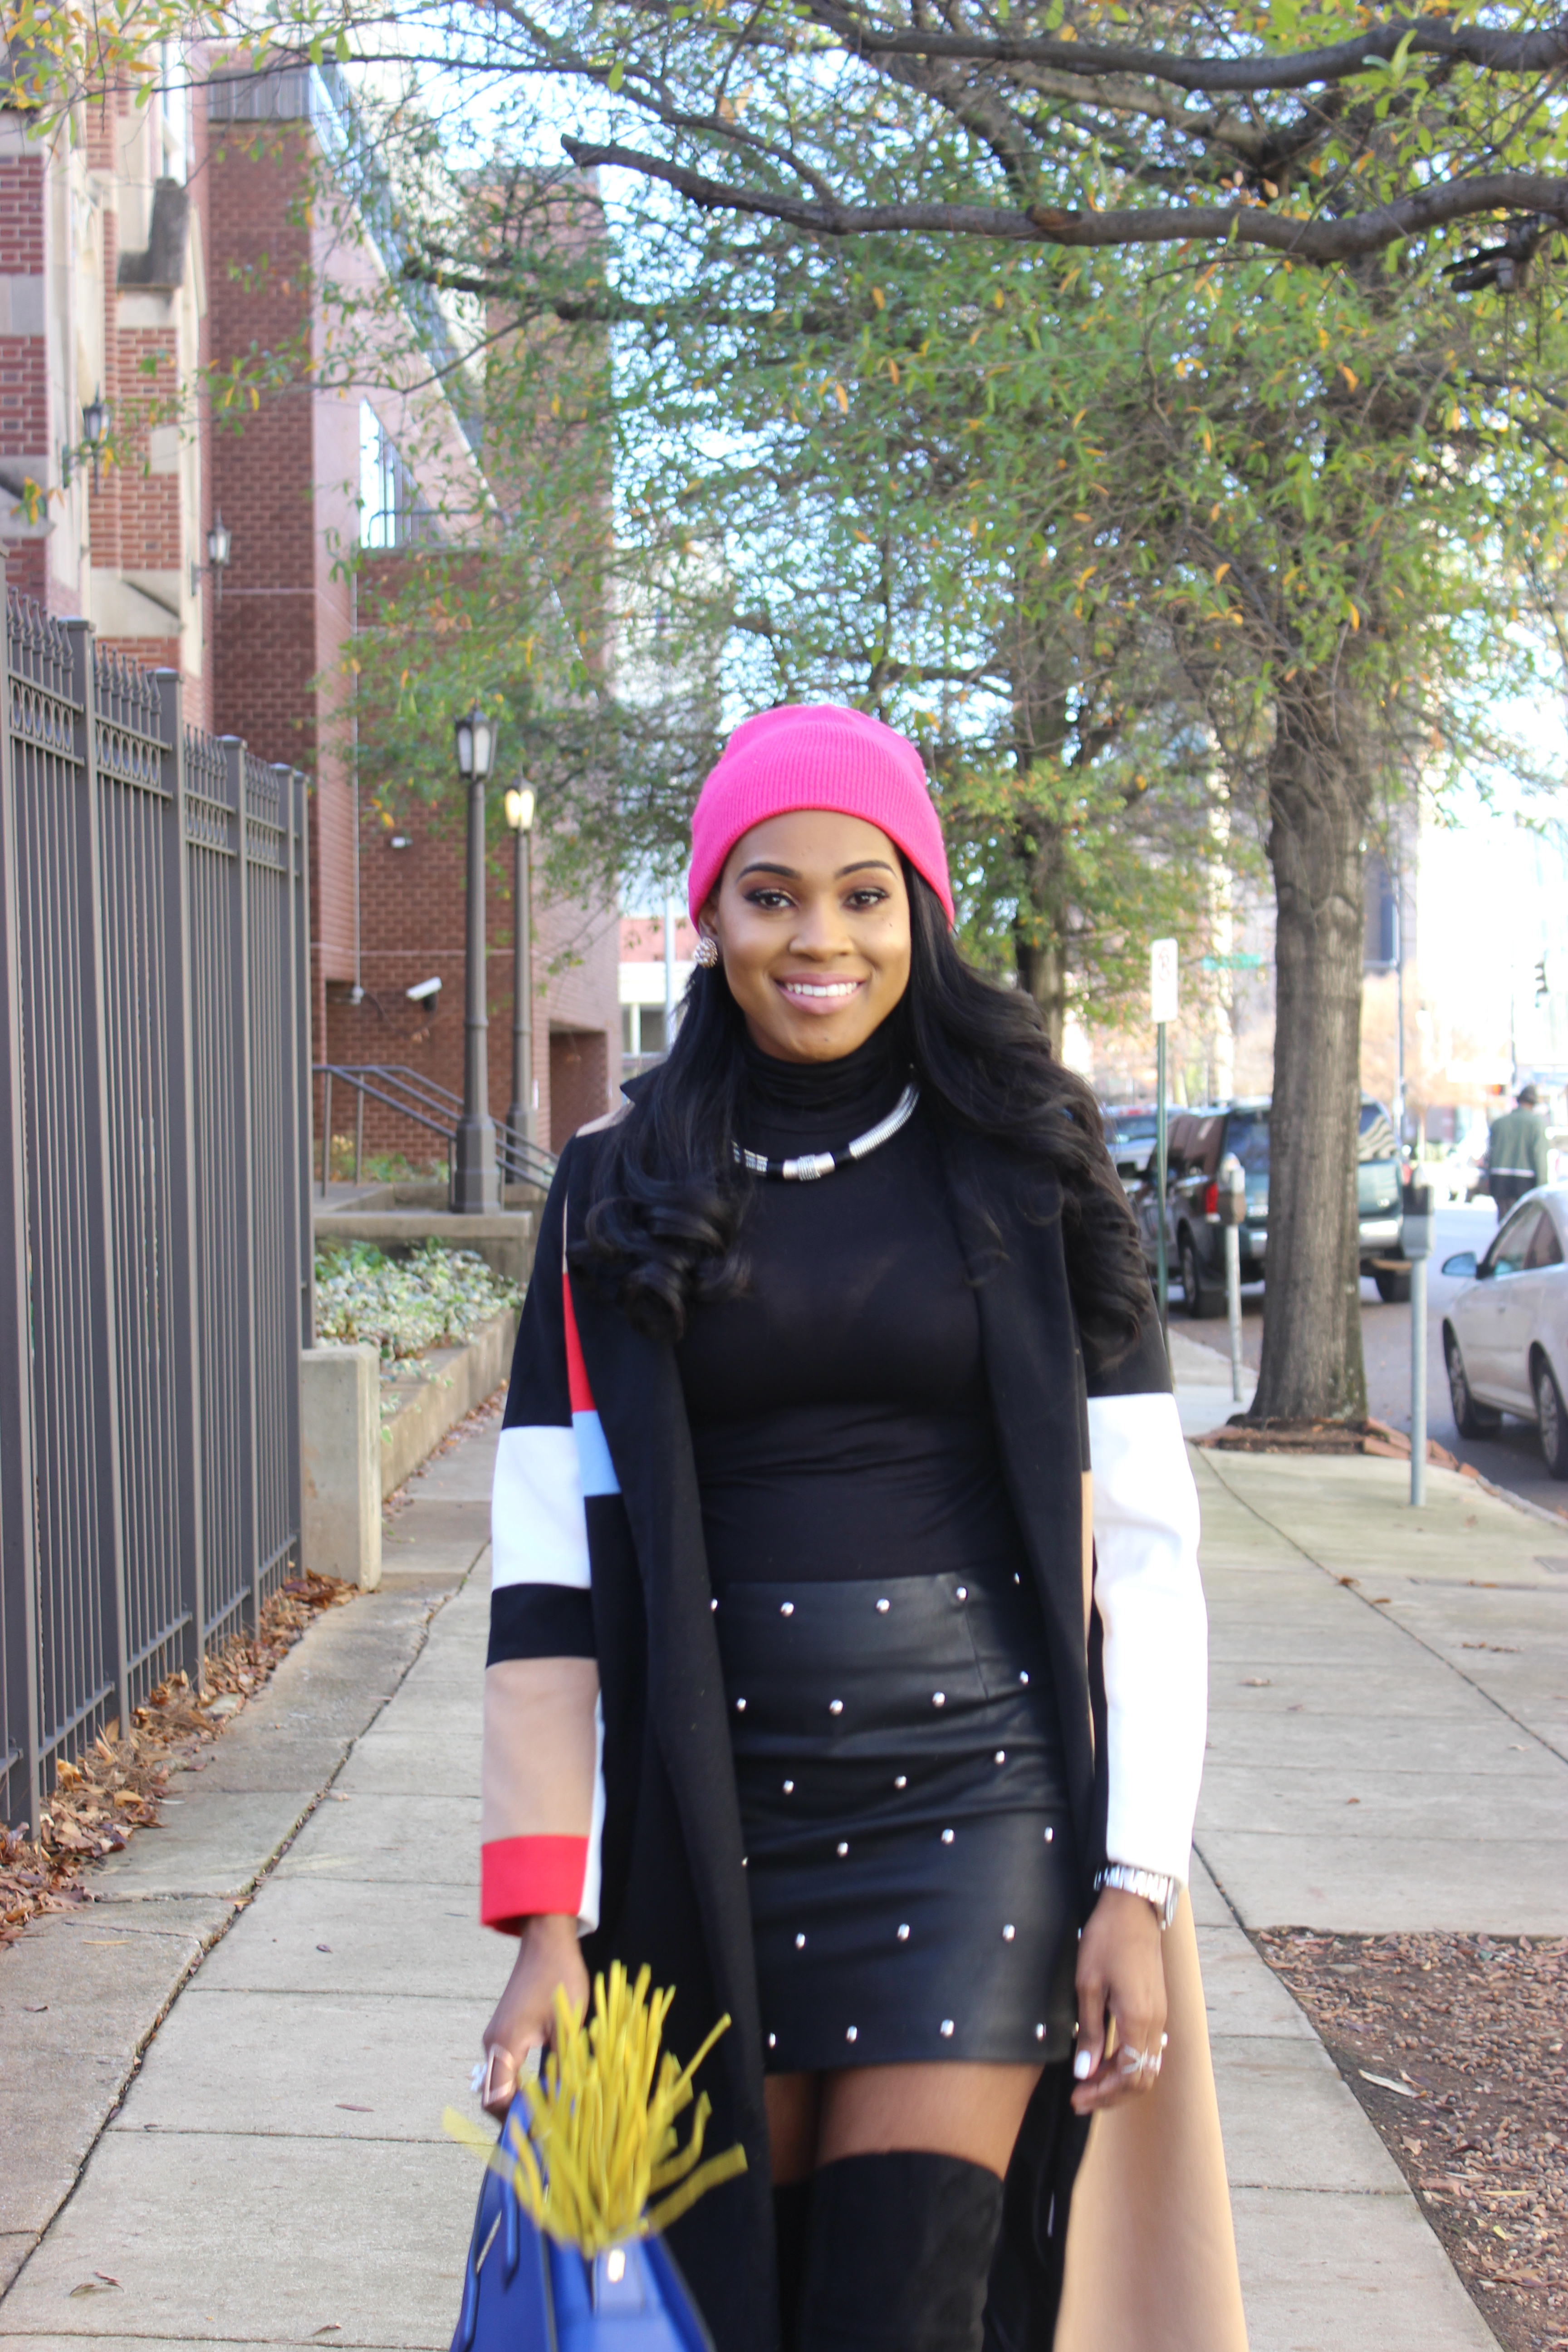 Style-Files-SheIn-Multicolor-Lapel-Color-Block-Coat-Forever21-Faux-Leather-studded-mini-skirt-black-sheer-turtleneck-Truffle-Collection-Over- The-Knee-Lace-Up-Back-High-Heeled-Boots-Hot-Pink-Beanie-Winter-Coat-Style-Guide-Oohlalablog-4